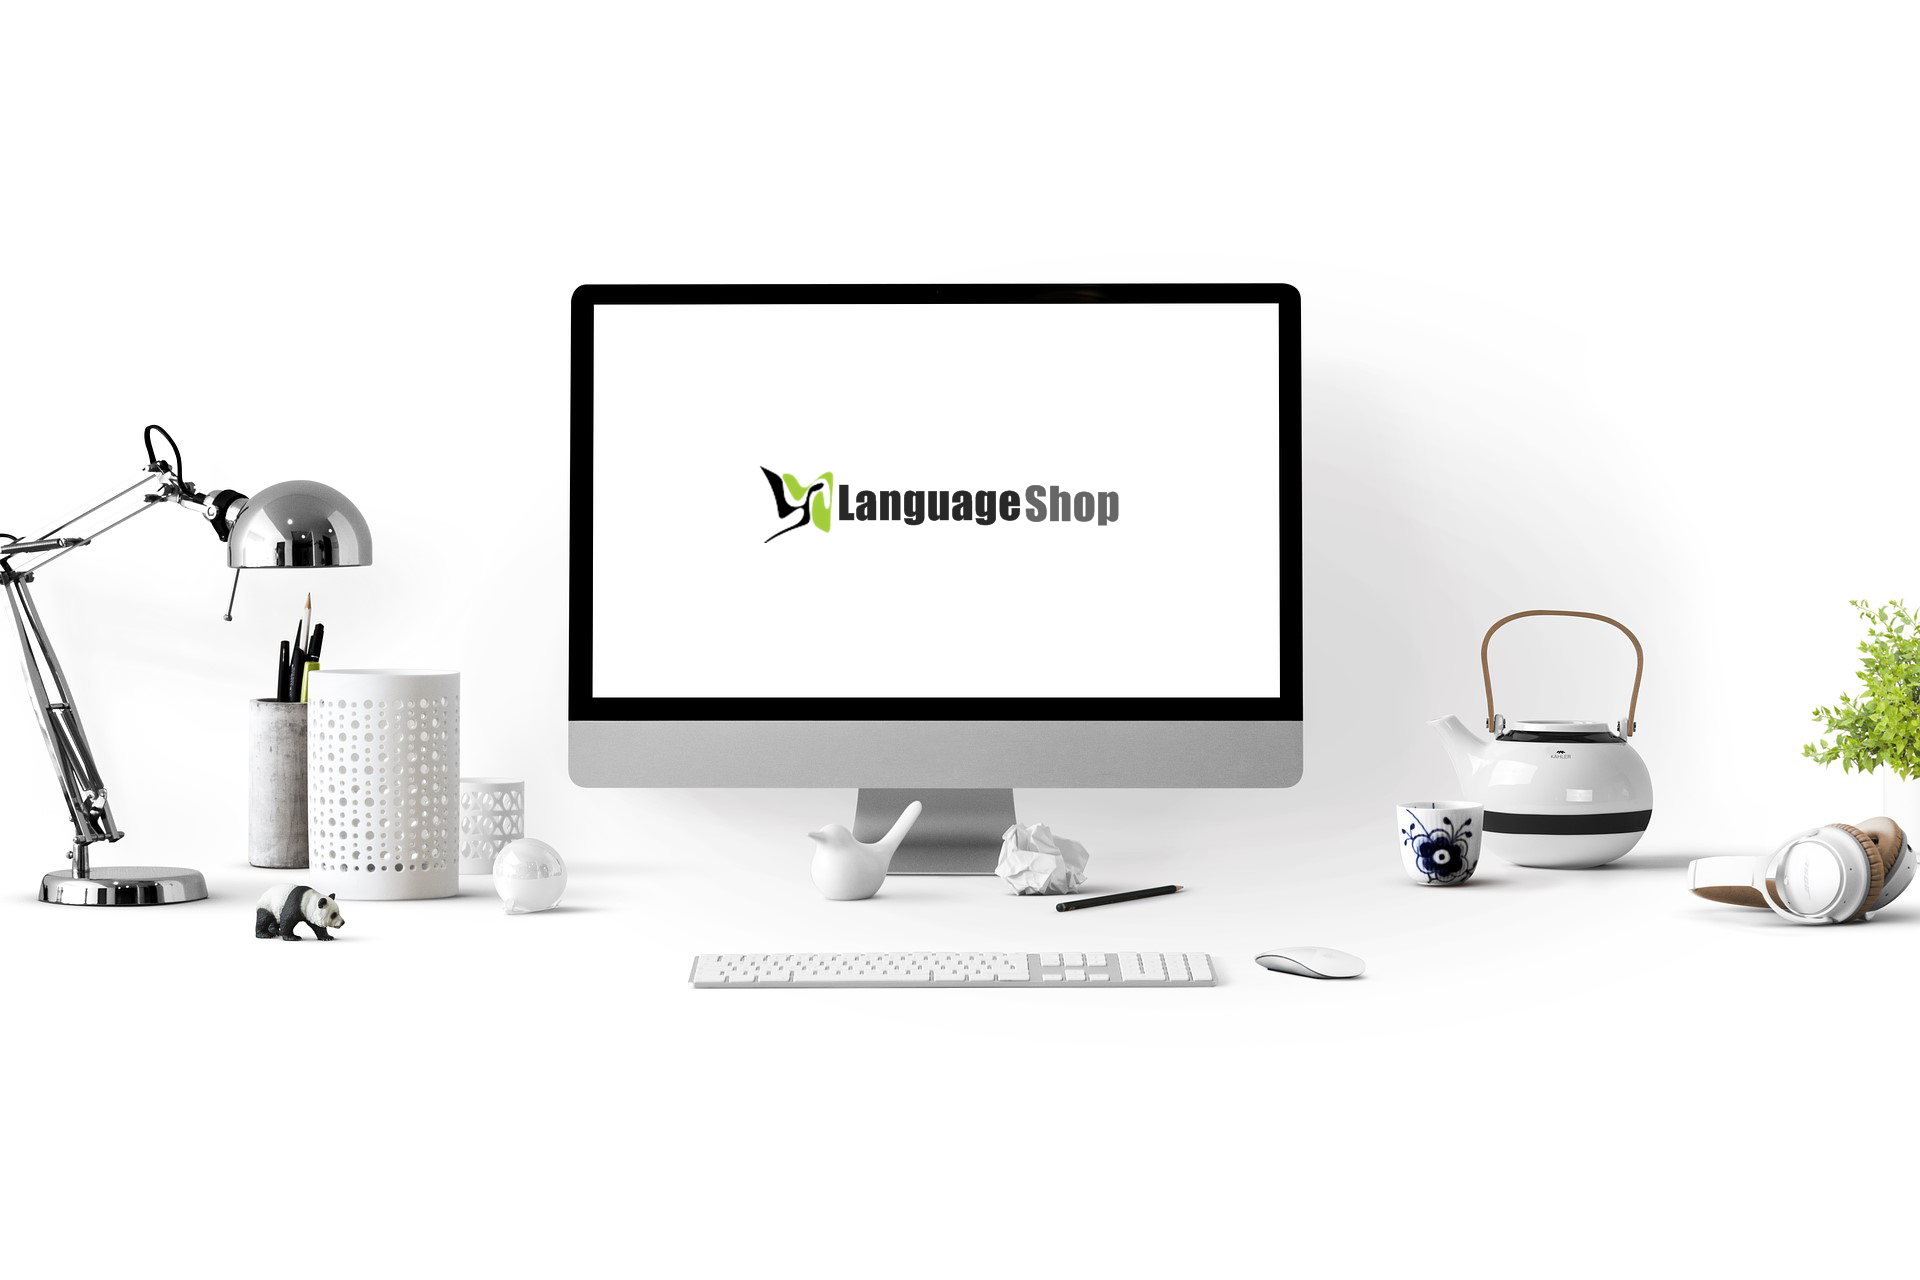 languageshop